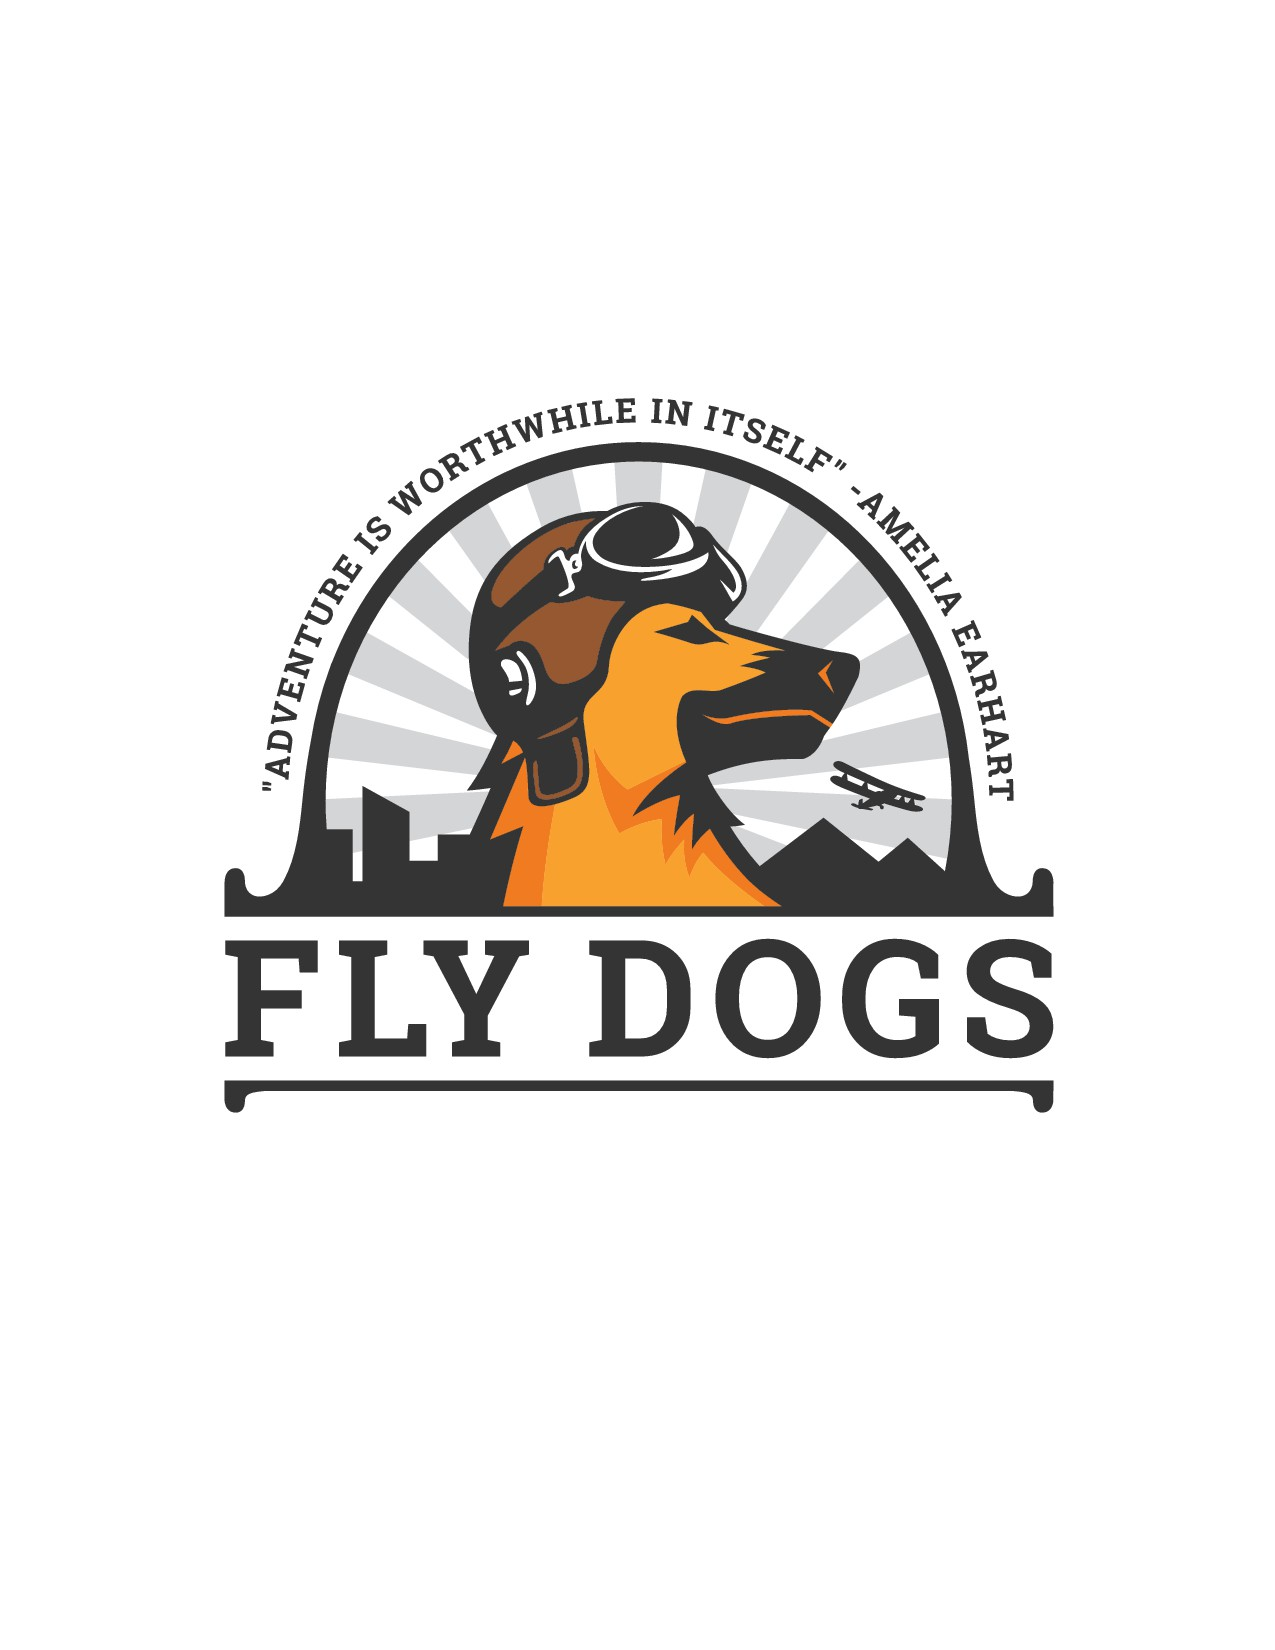 Need Bold Logo for an Earhart-Inspired Dog Adventure Business!